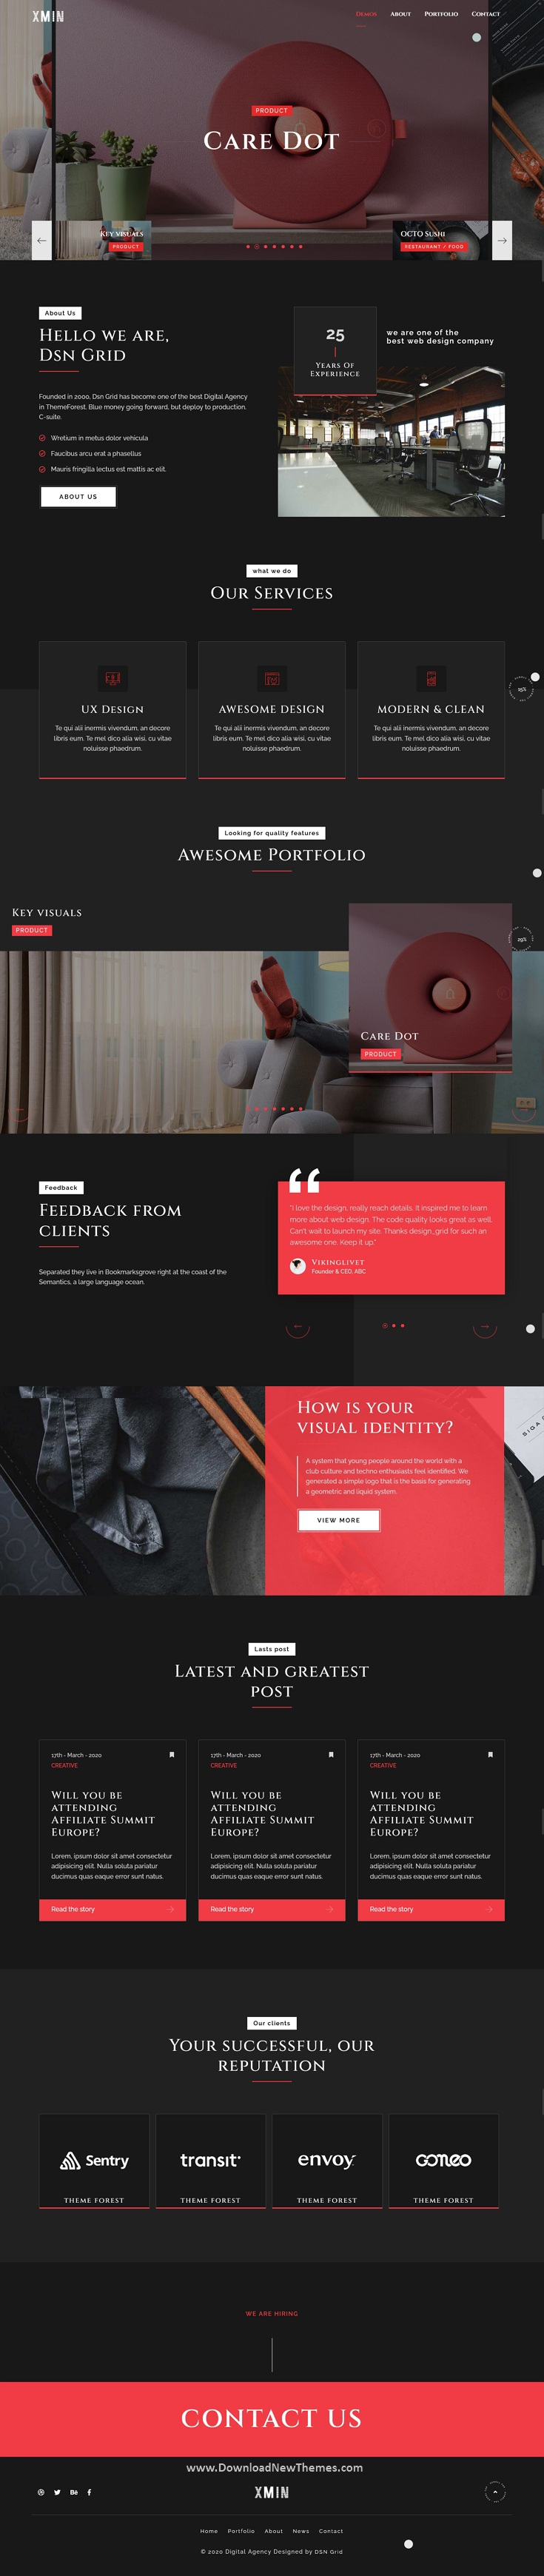 Creative Ajax Showcase Portfolio Template